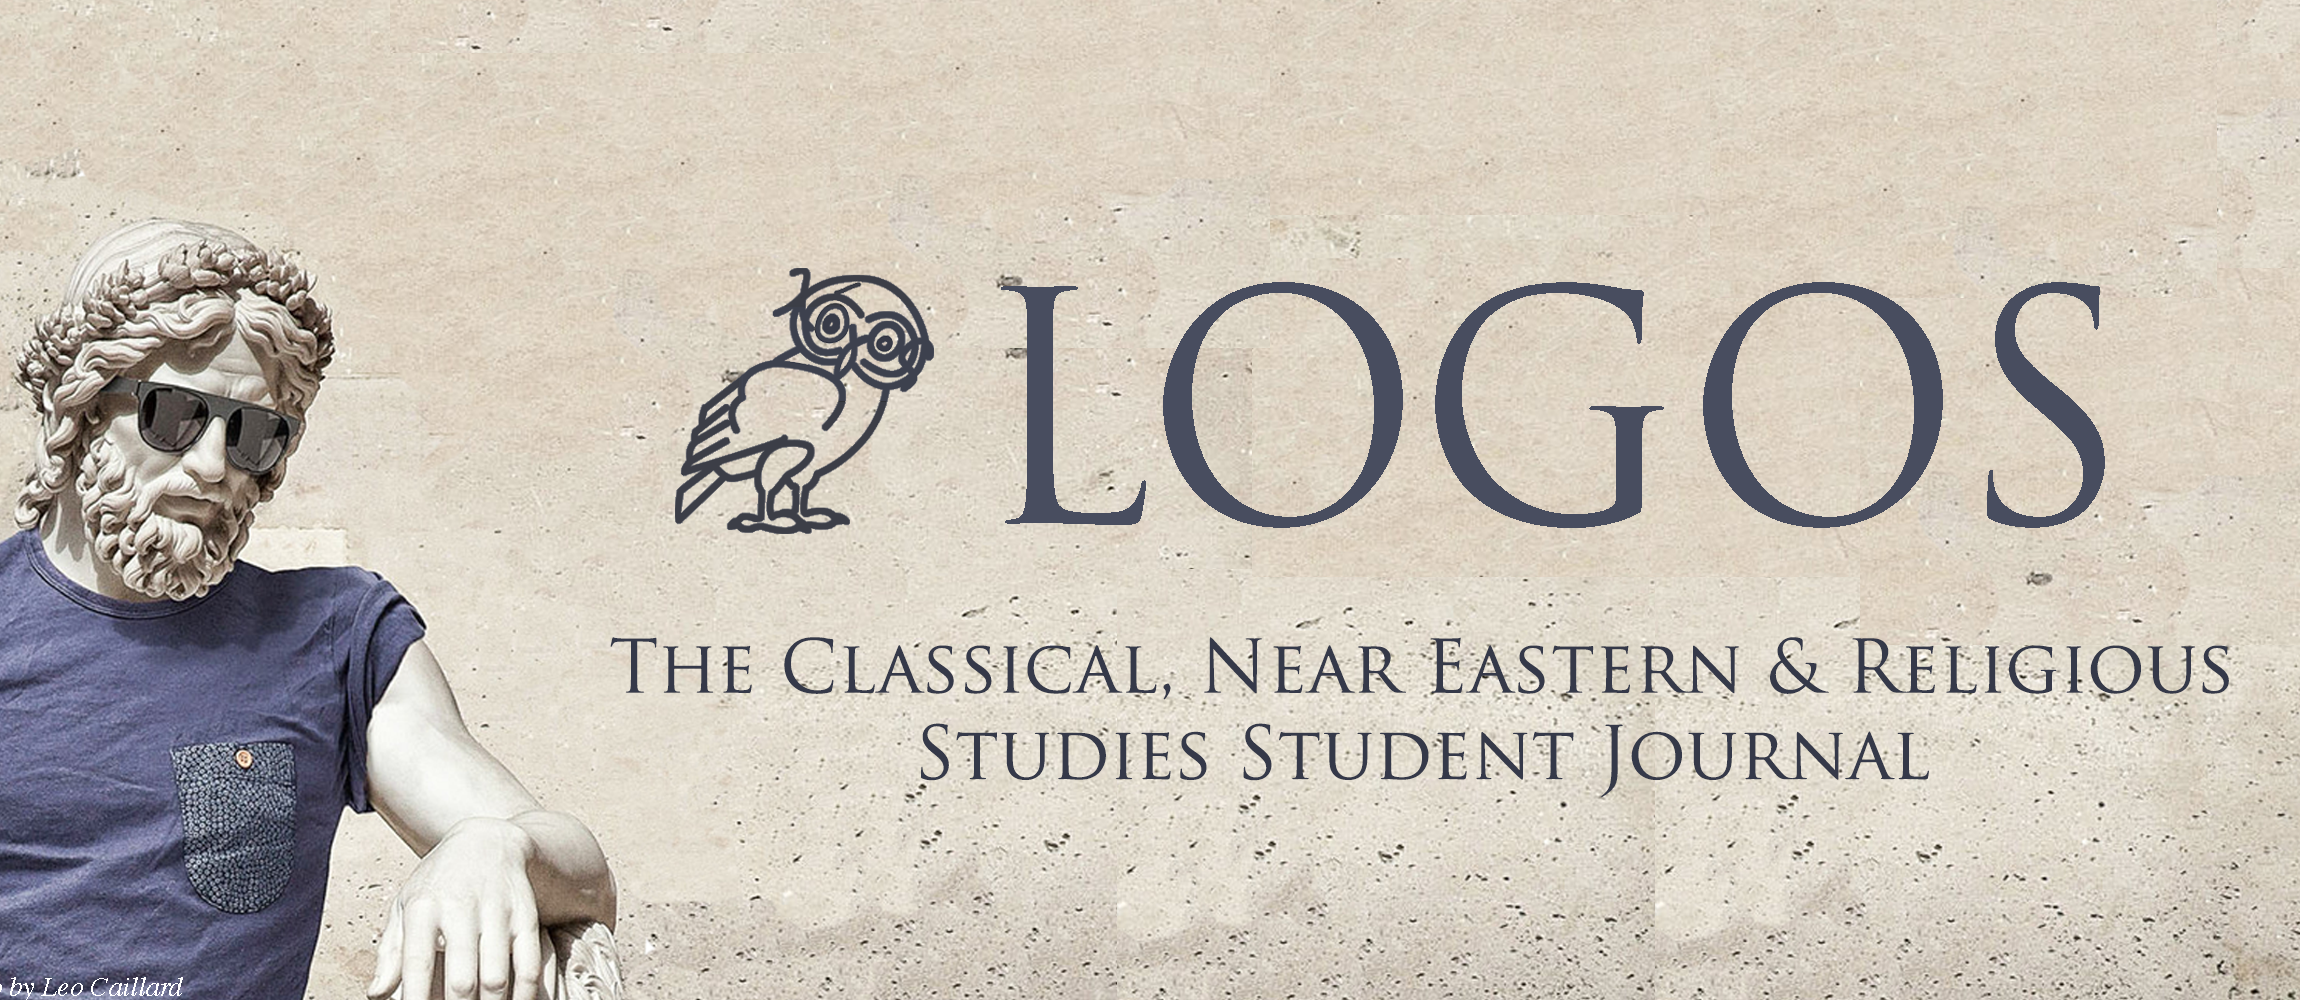 Logos: The Classical, Near Eastern & Religious Studies Student Journal